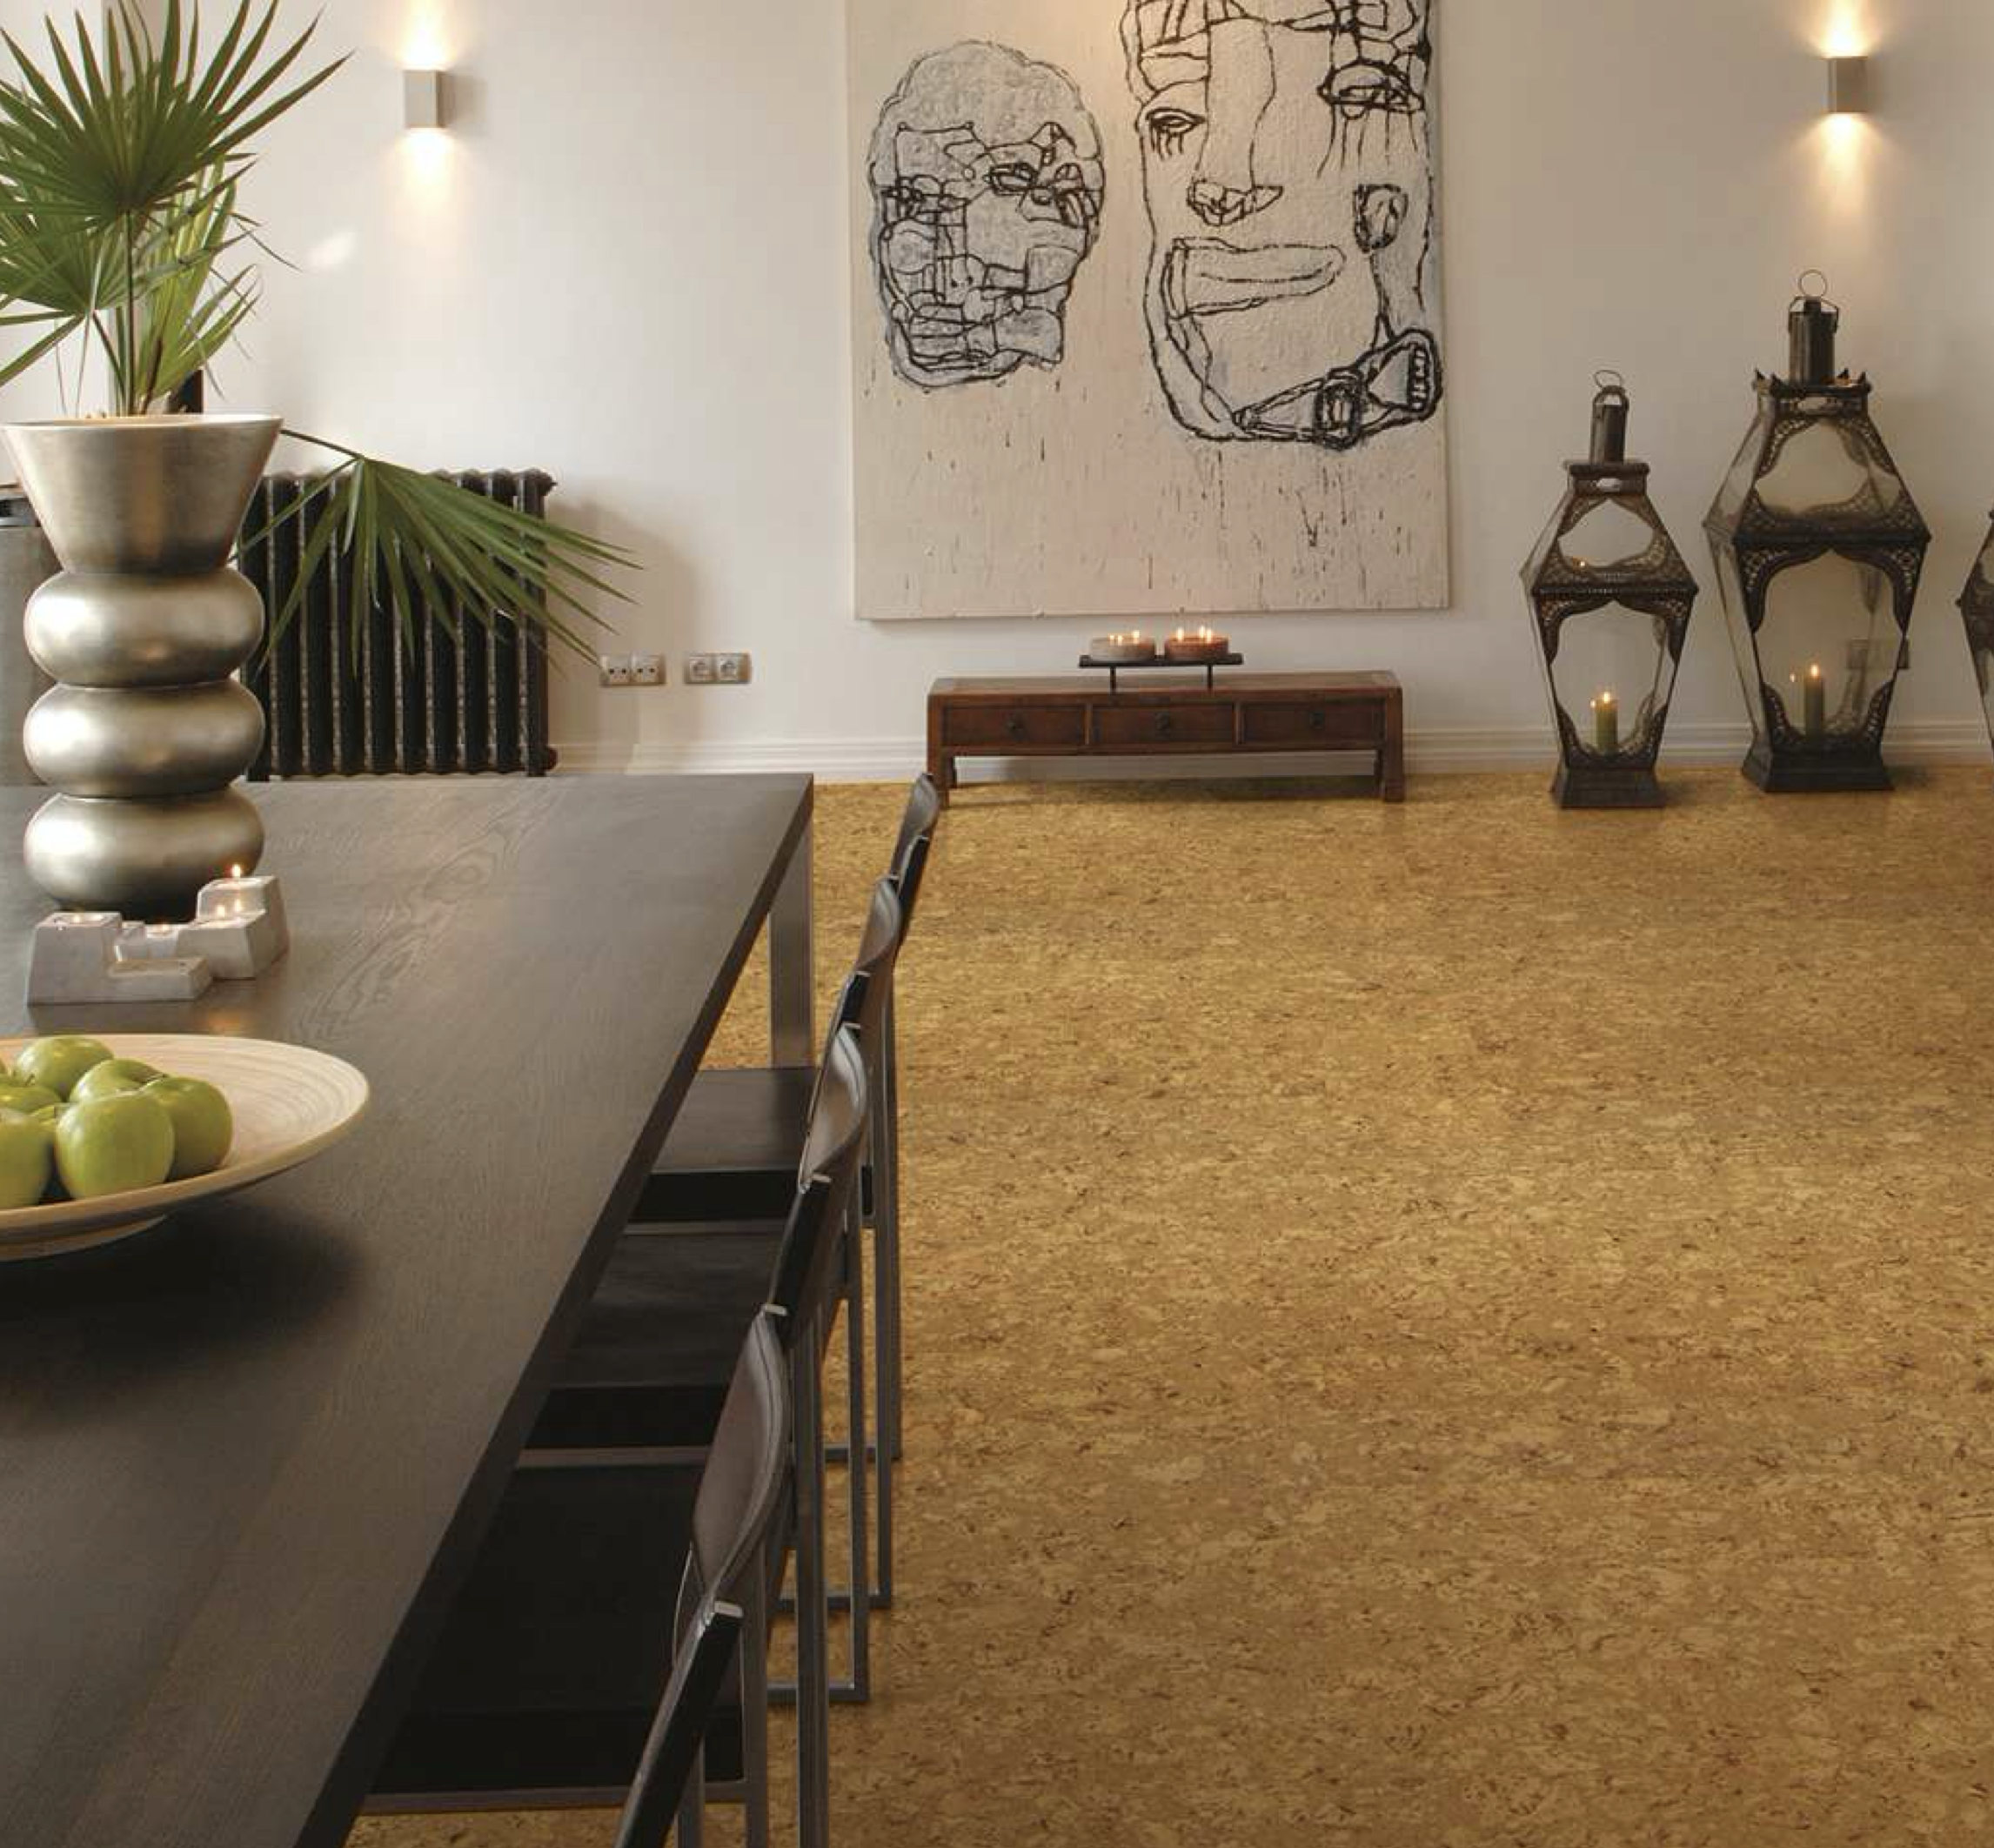 Cork flooring from Wicanders can suit modern interiors